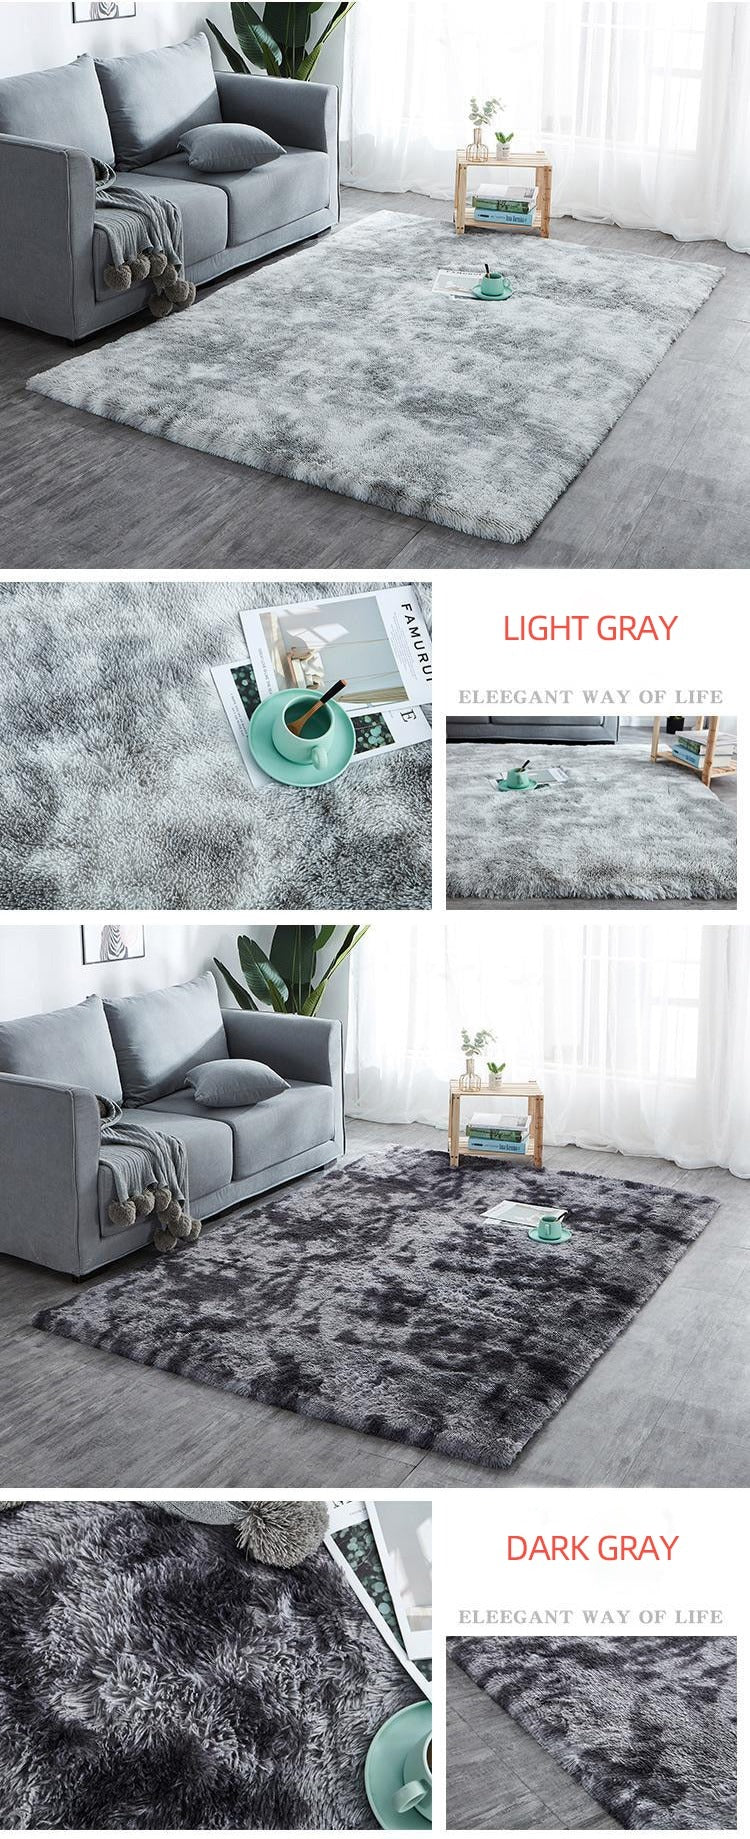 Elegant dark gray and light gray rug